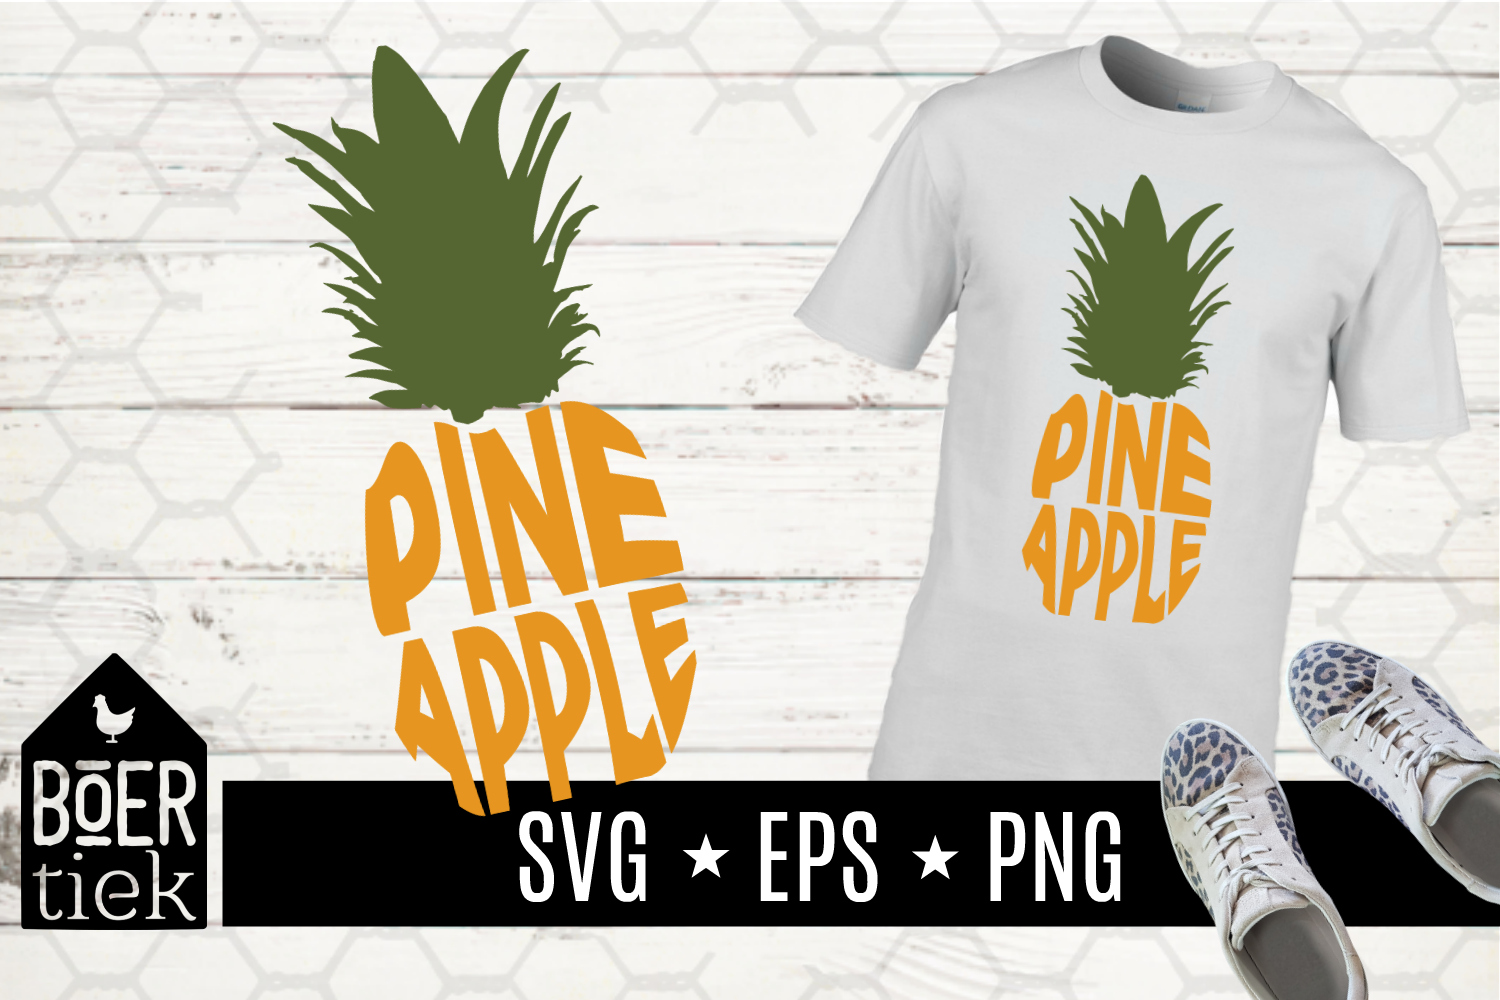 Download Free Pineapple With Word In It Svg Cutting File Graphic By Boertiek for Cricut Explore, Silhouette and other cutting machines.